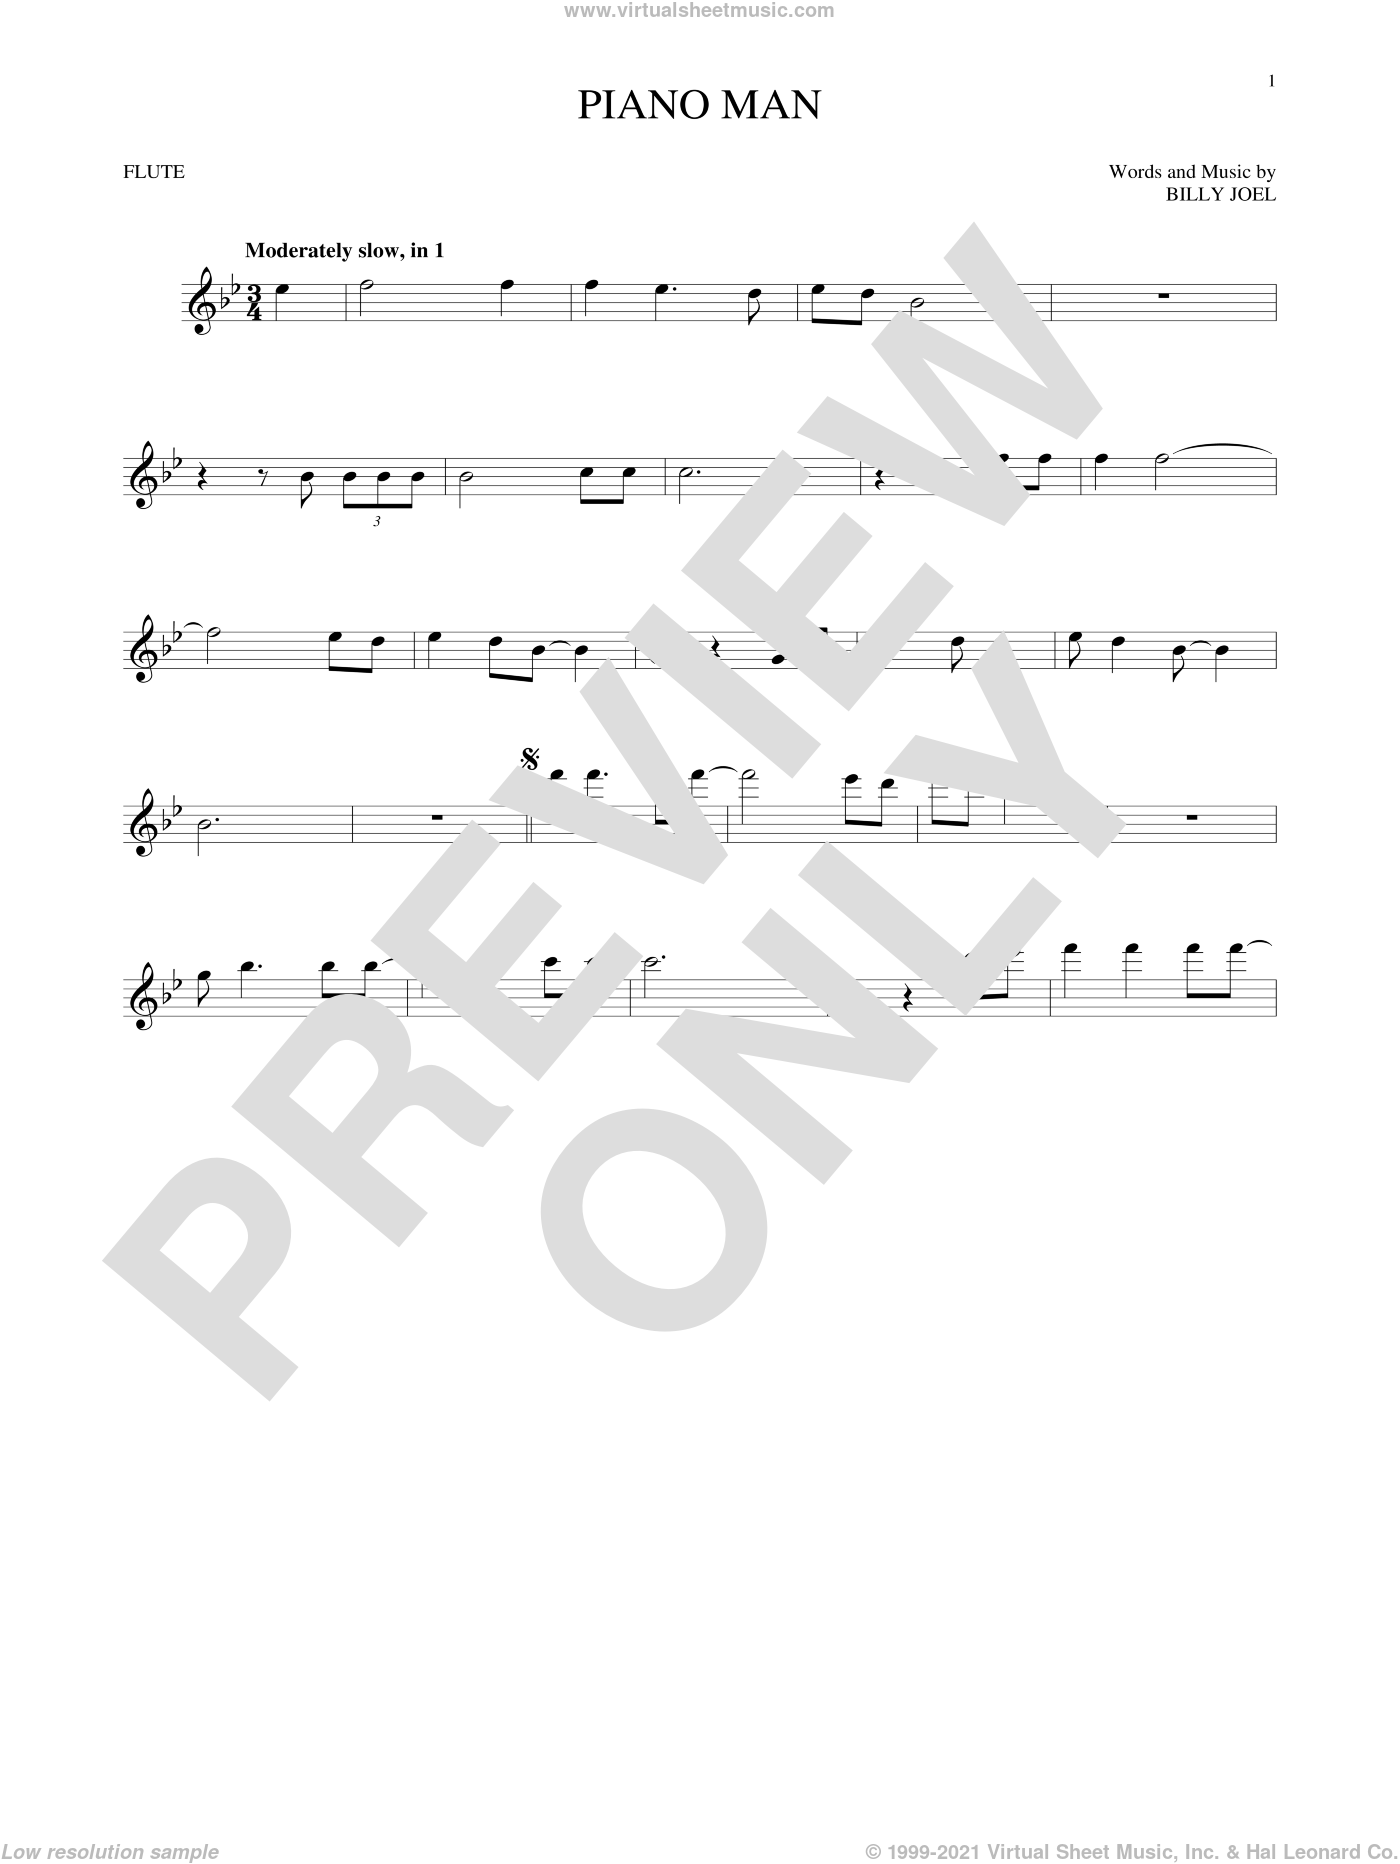 Piano Man sheet music for flute solo by Billy Joel, intermediate skill level